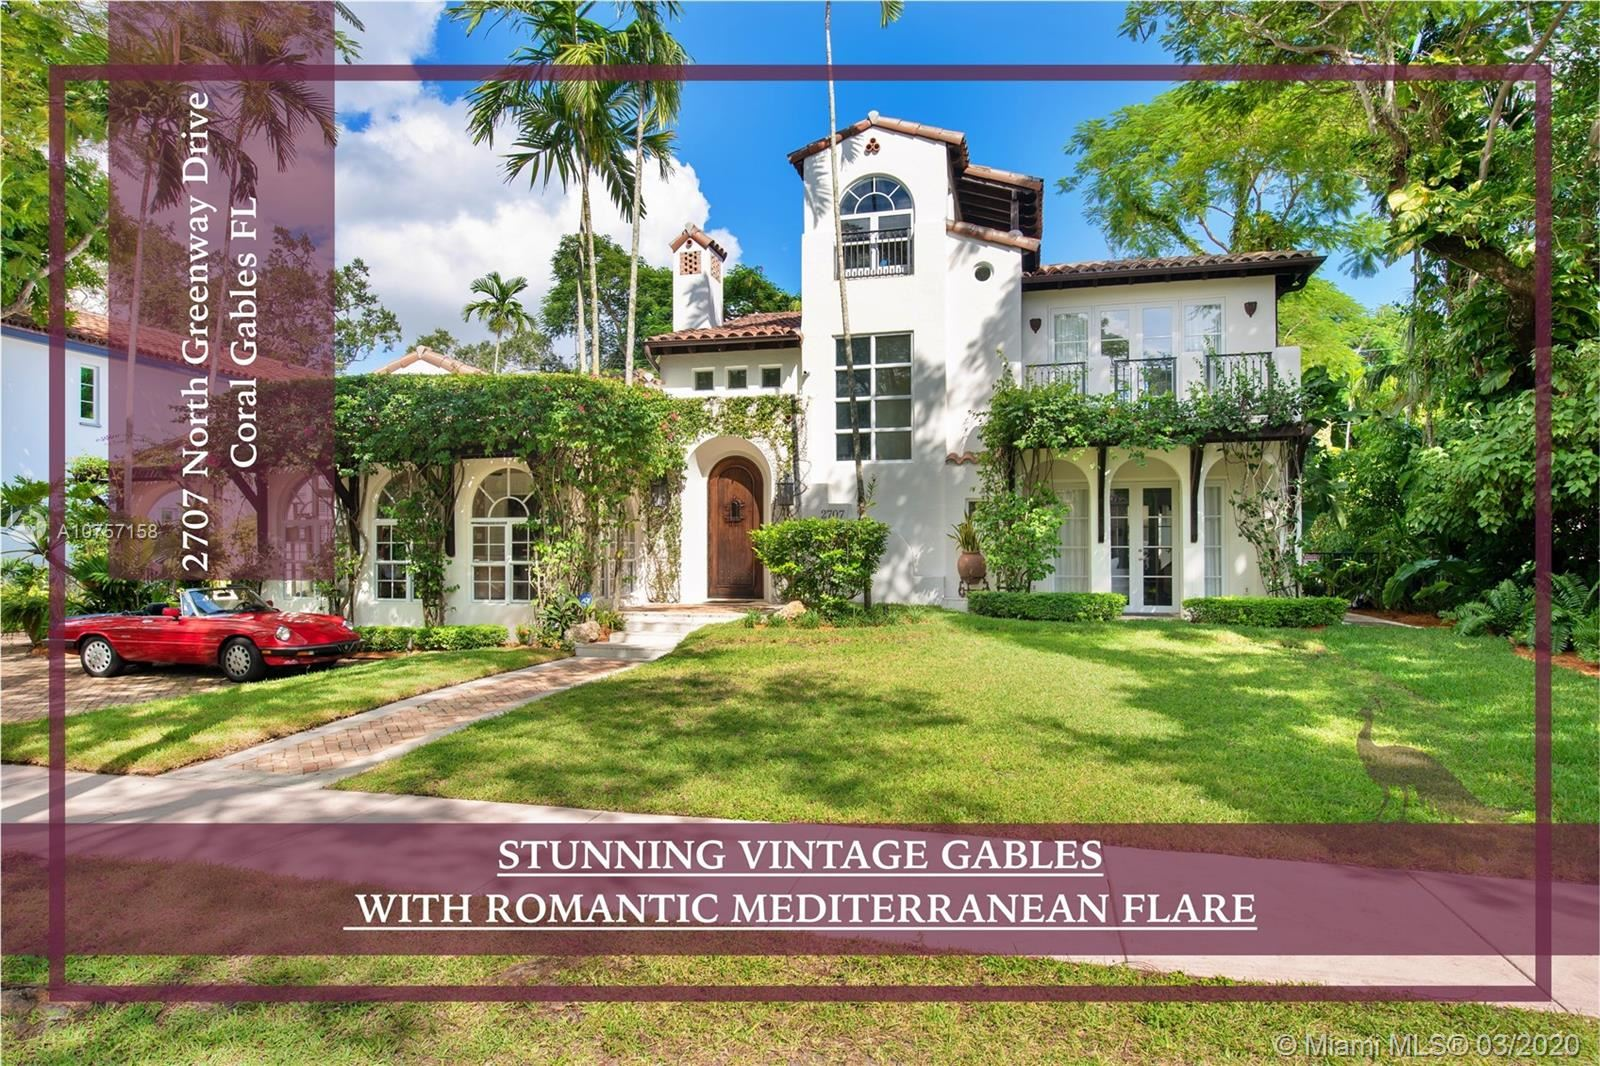 2707 N Greenway Dr, Coral Gables, FL 33134 - #: A10757158